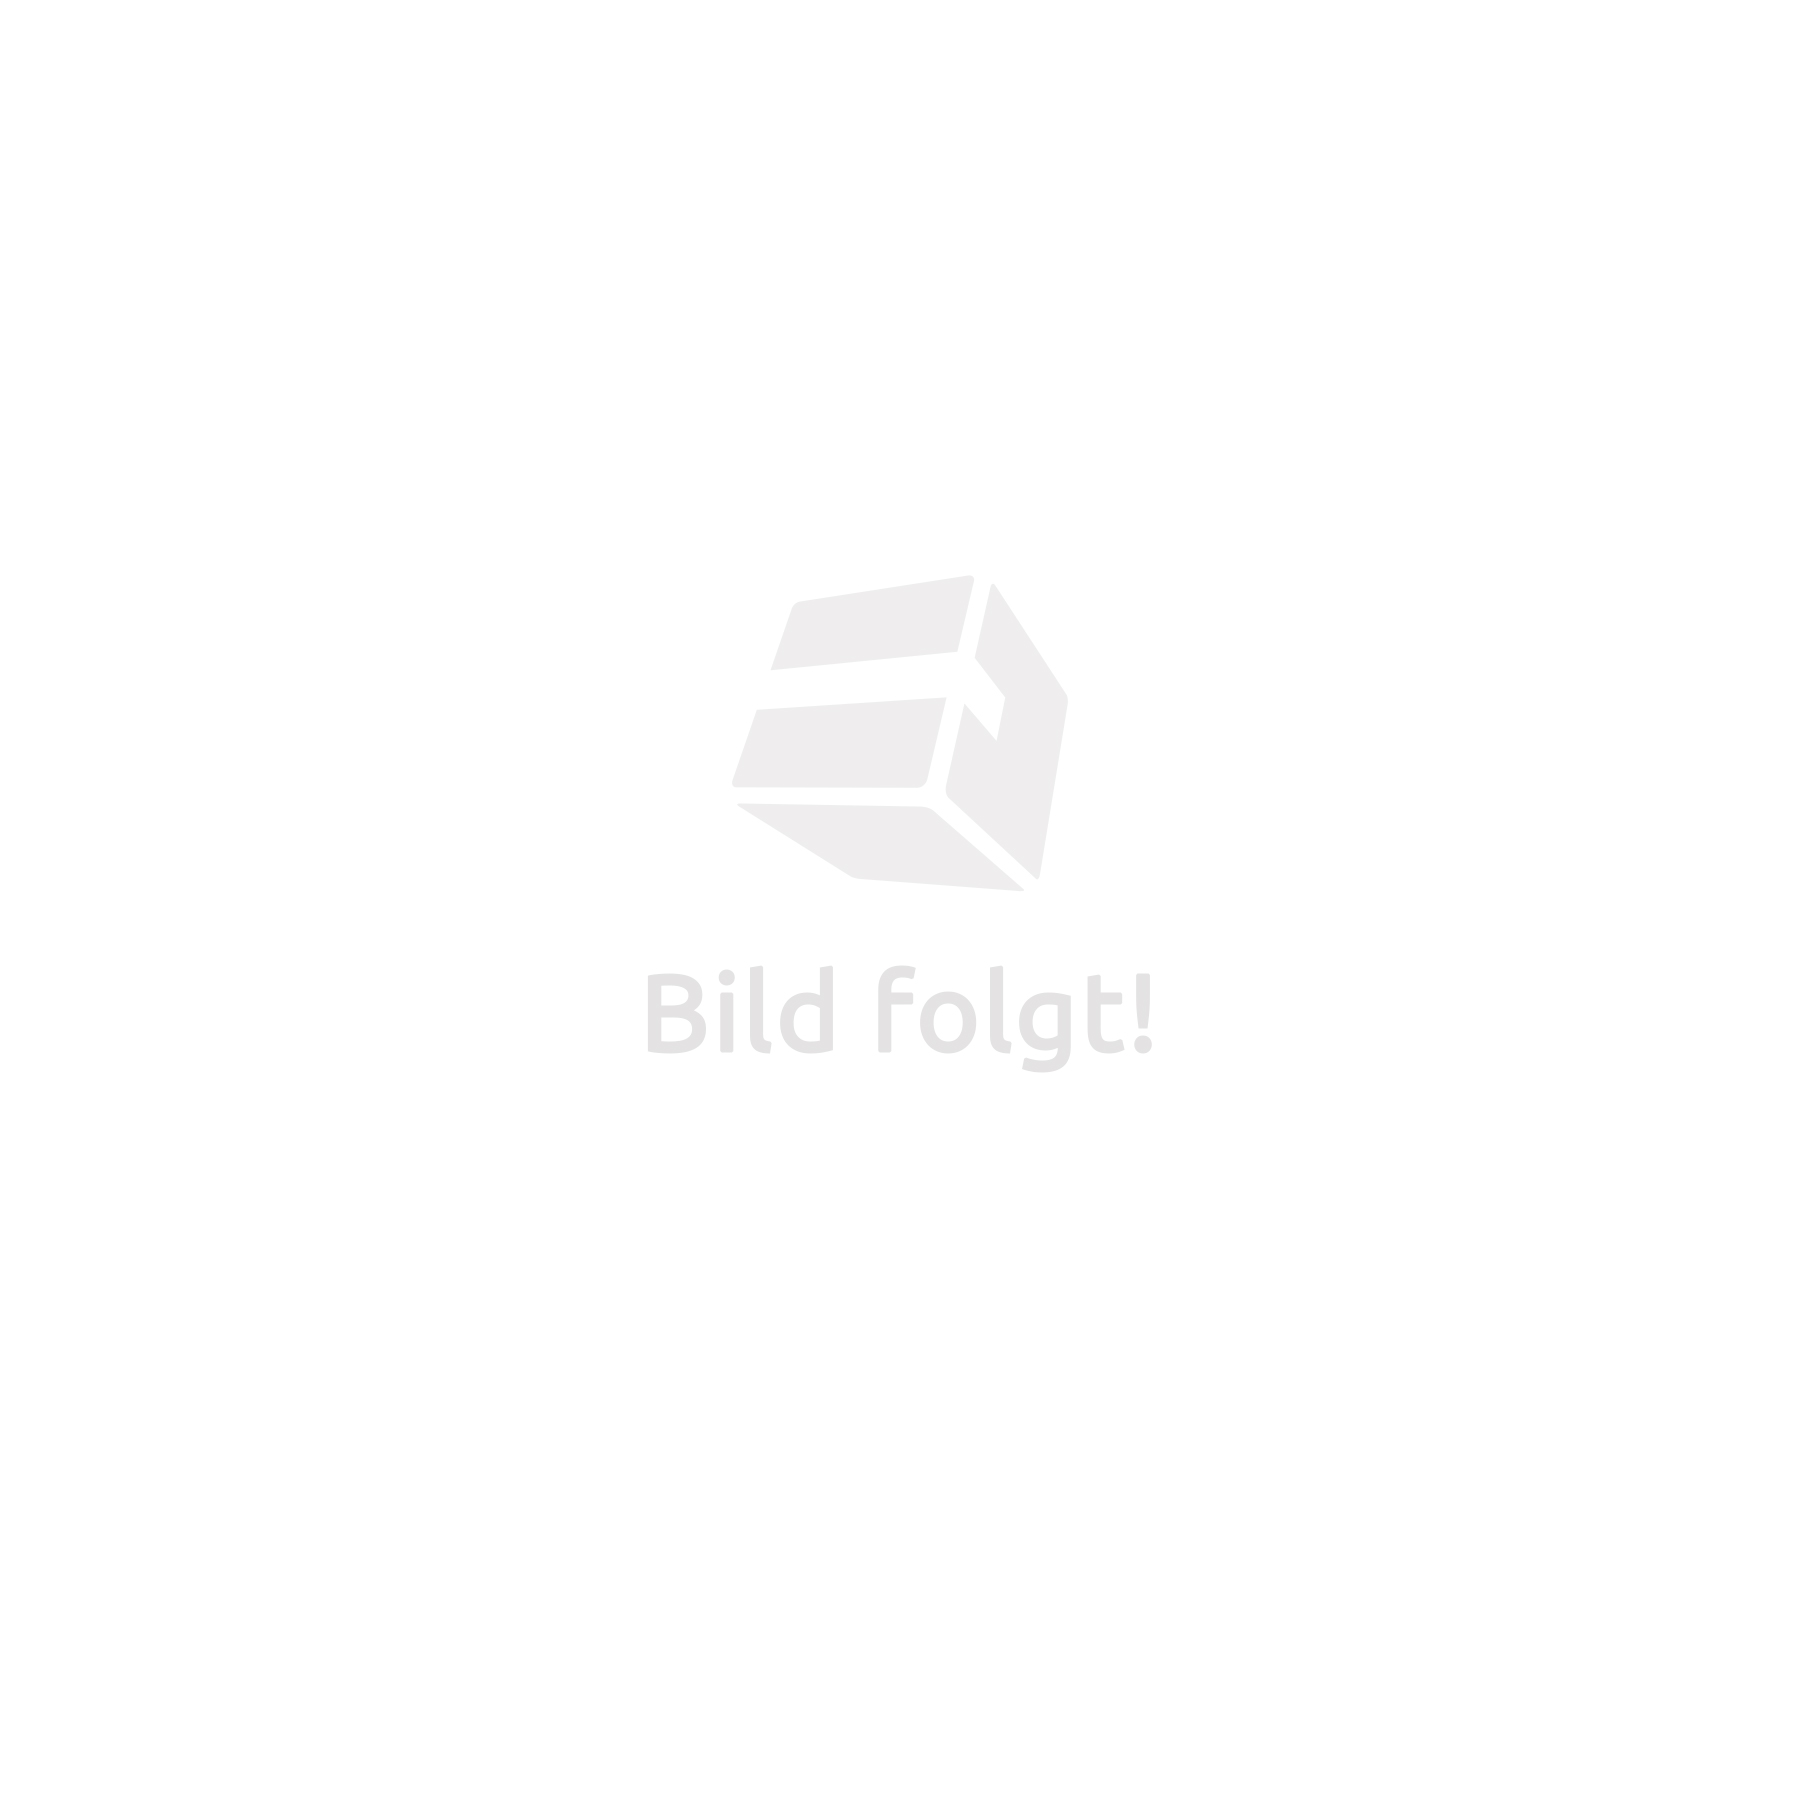 2 LED Barra de luz con sensor de movimiento